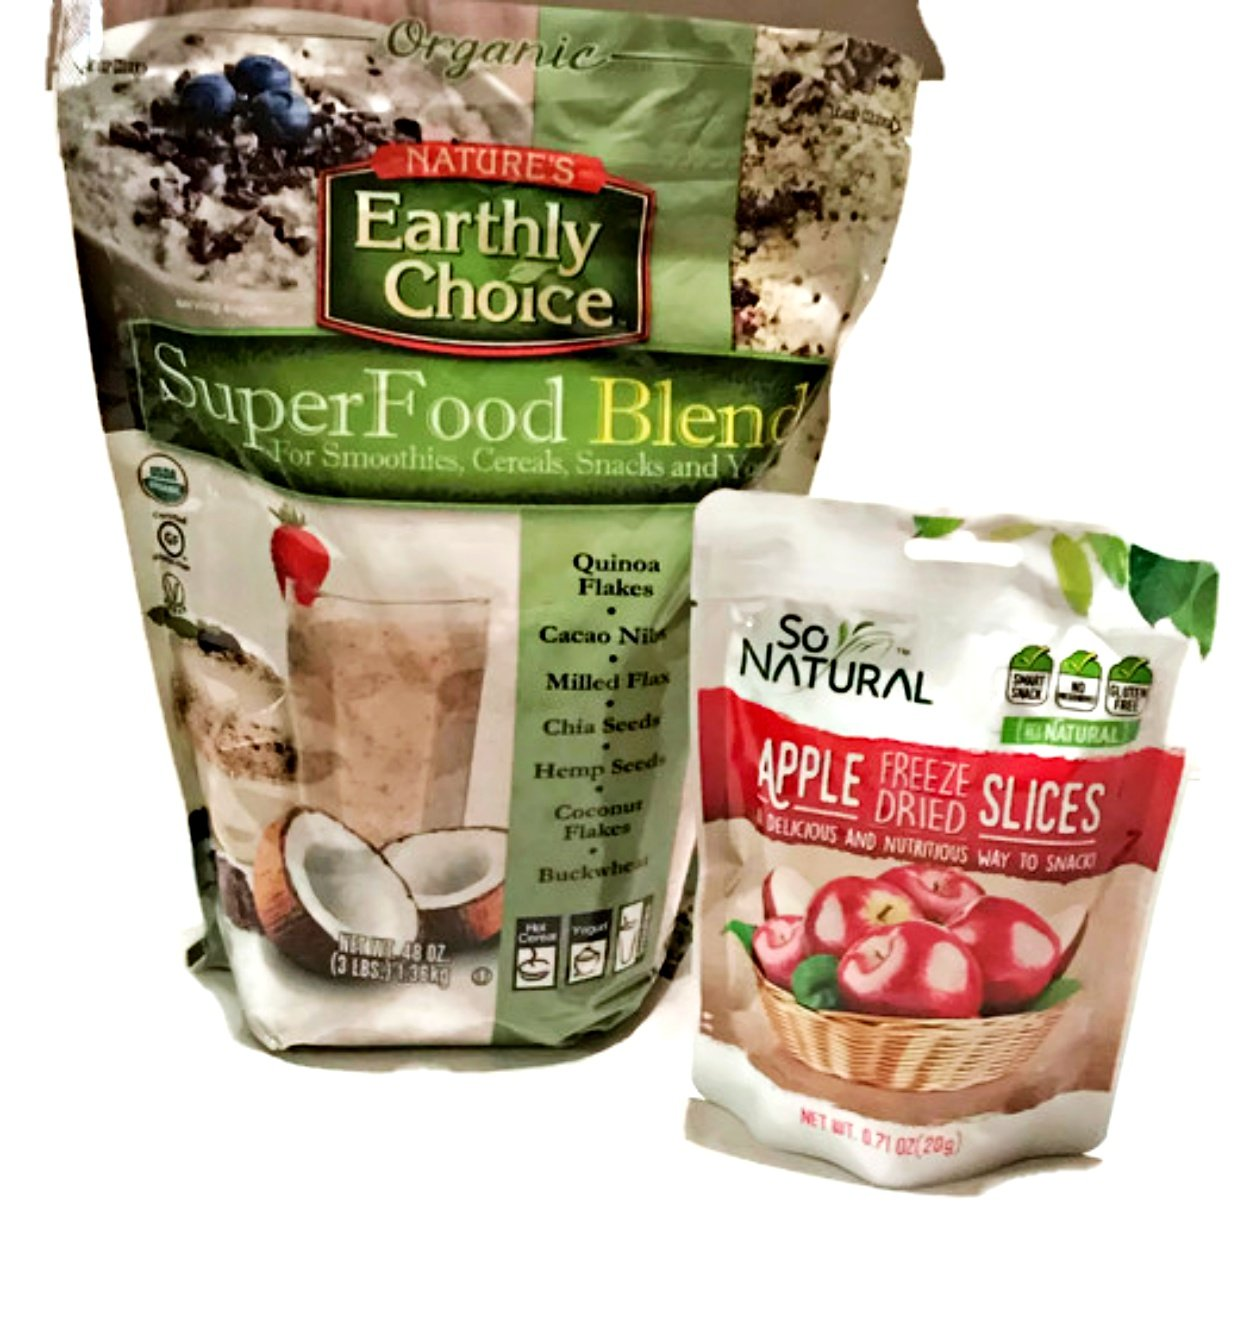 VALUE Size Organic Nature's Earthly Choice SuperFood Blend 3LBS (48oz)